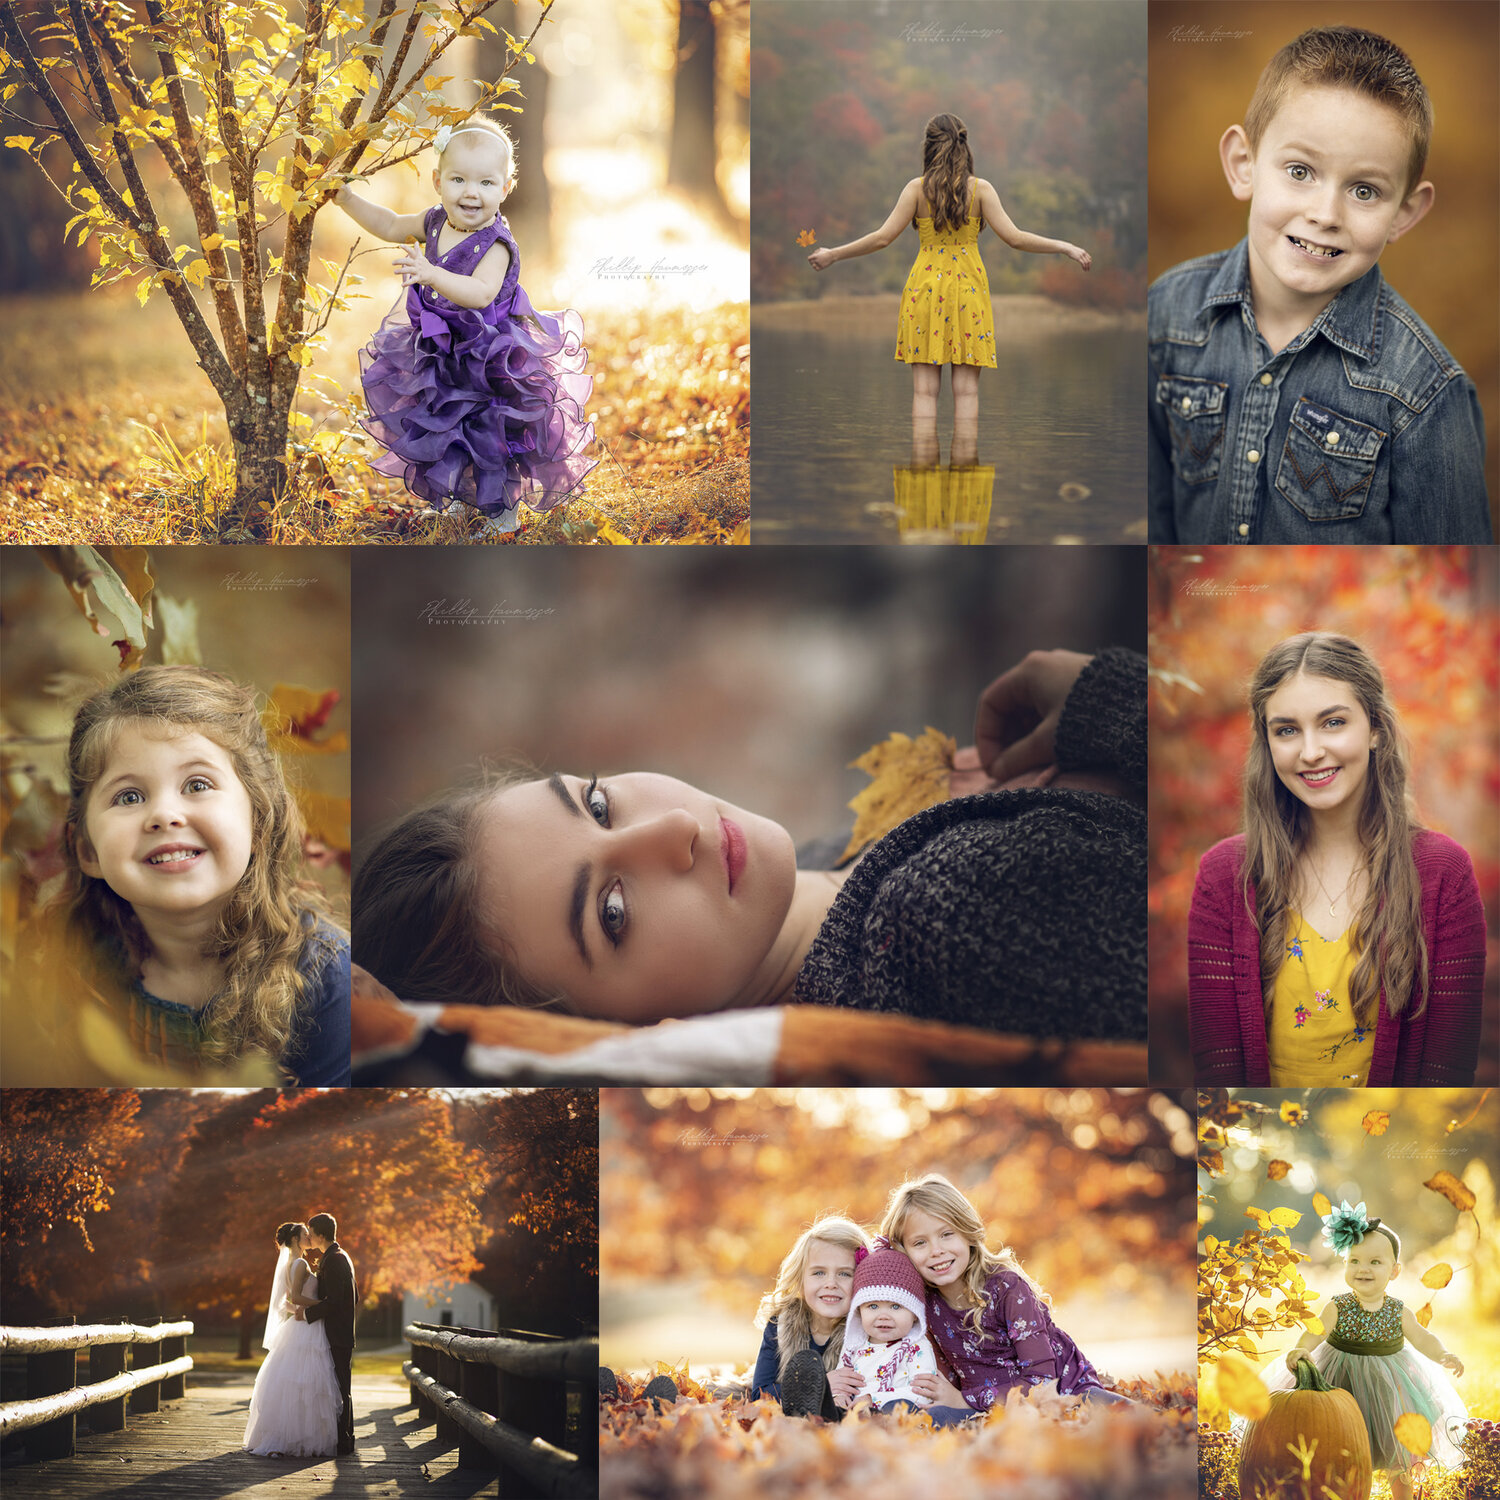 The Autumn Edits Collection